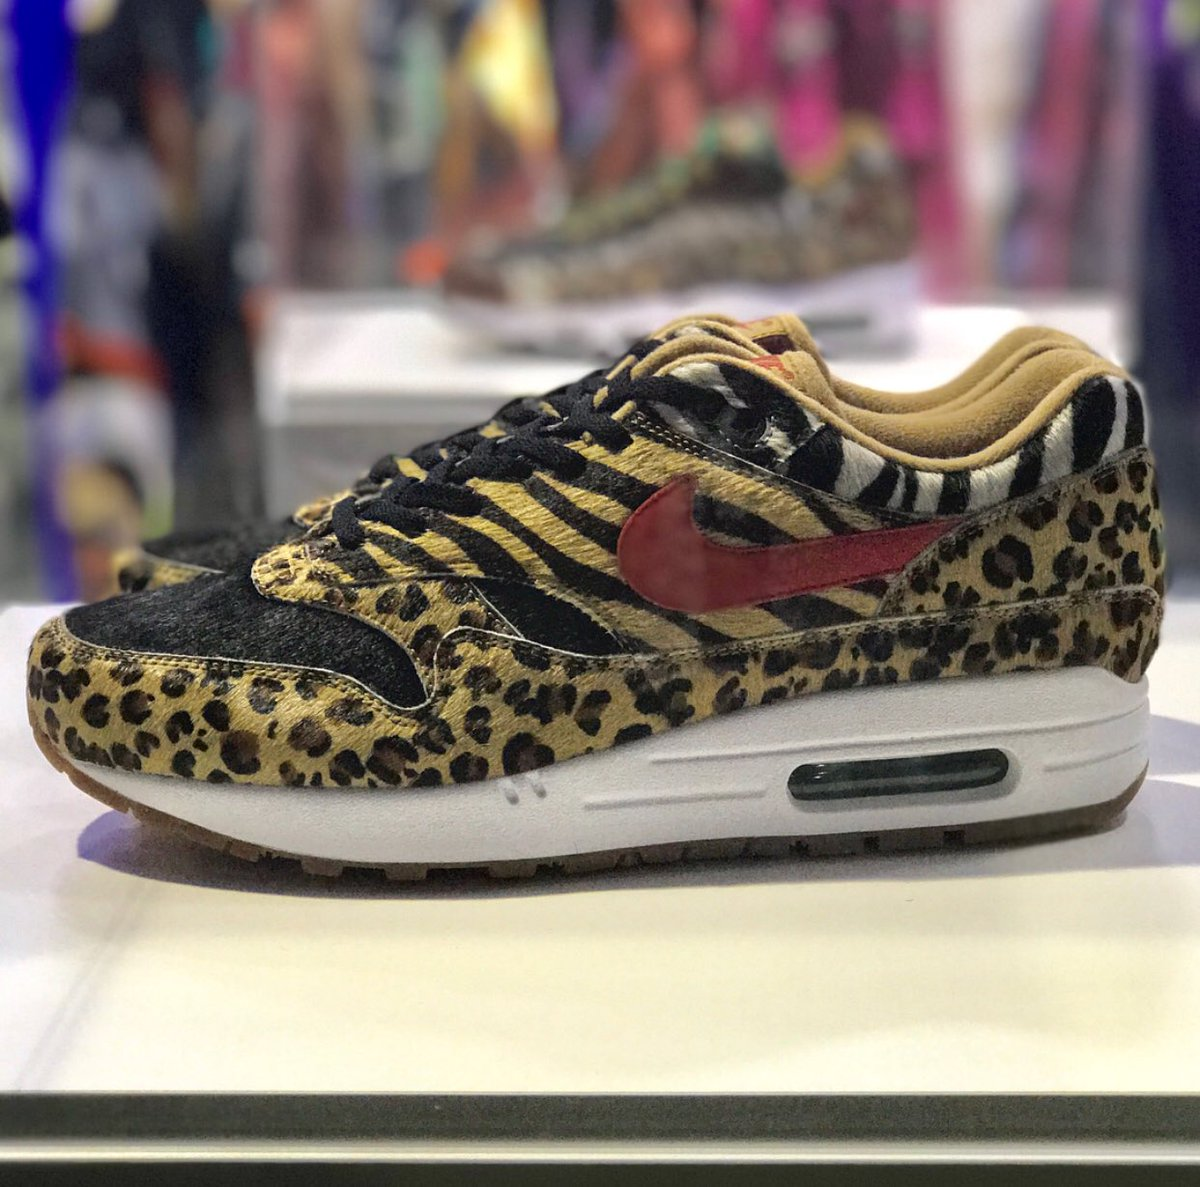 """best service c20a6 d04f7 Atmos x nike """"animal pack 2.0"""" drops on air max day 2018 ..."""